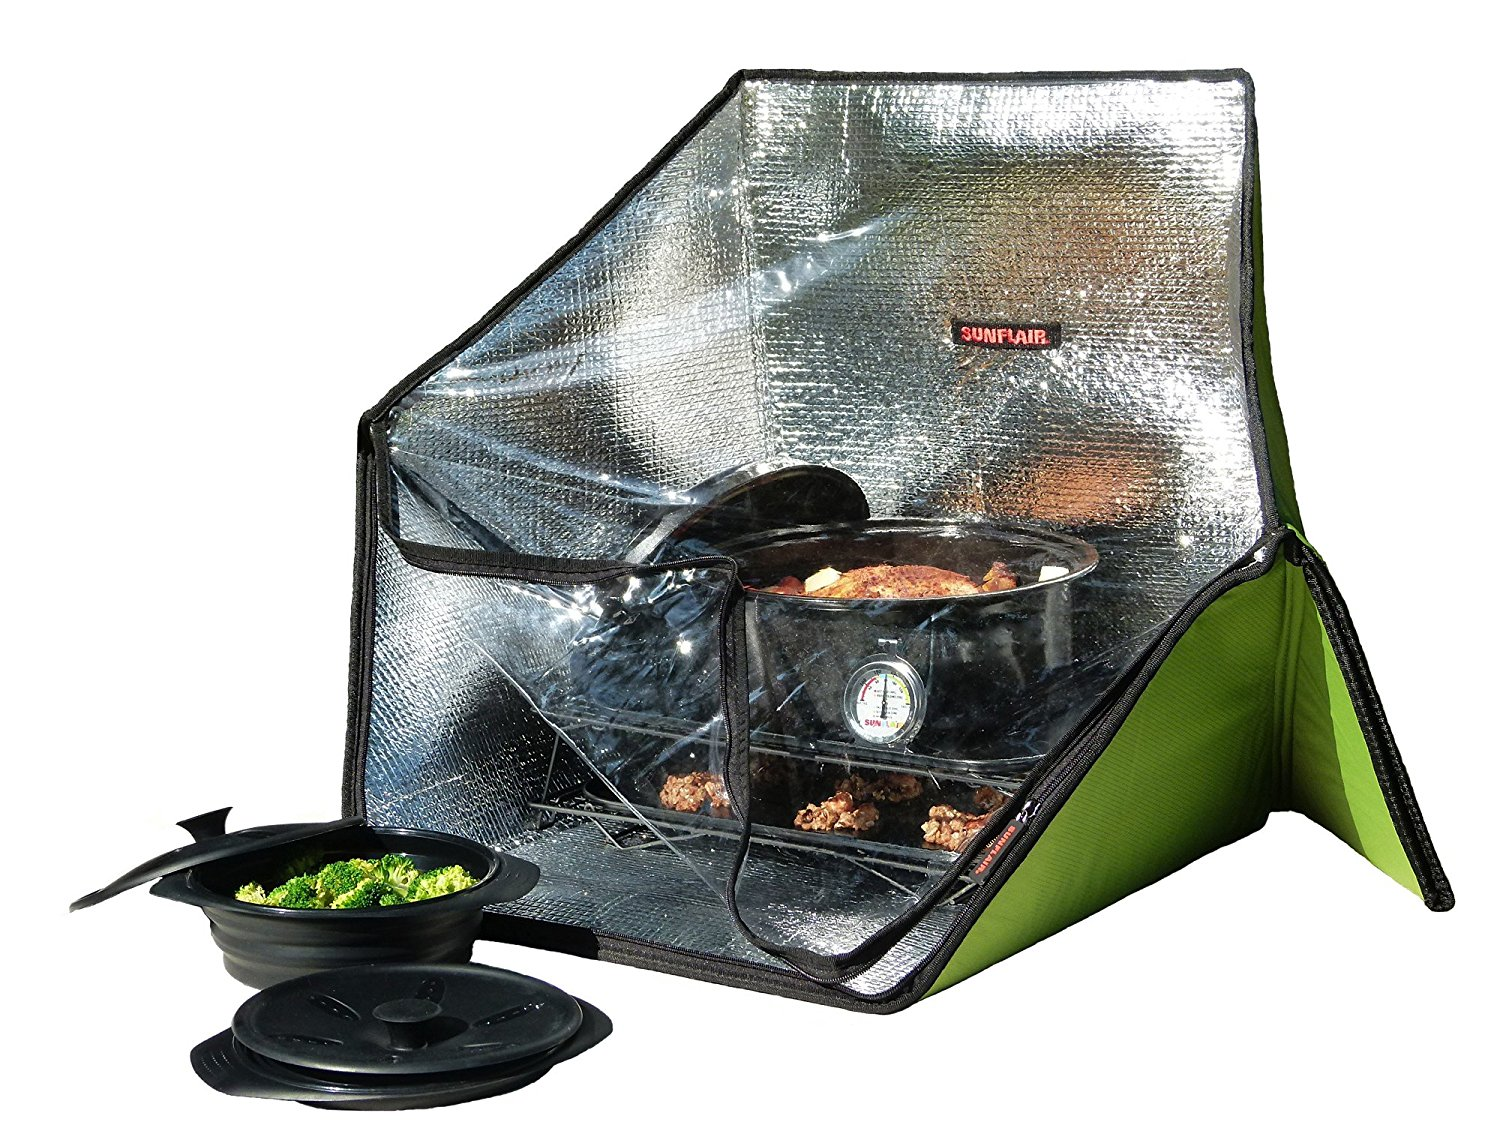 Sunflair Deluxe Solar Oven